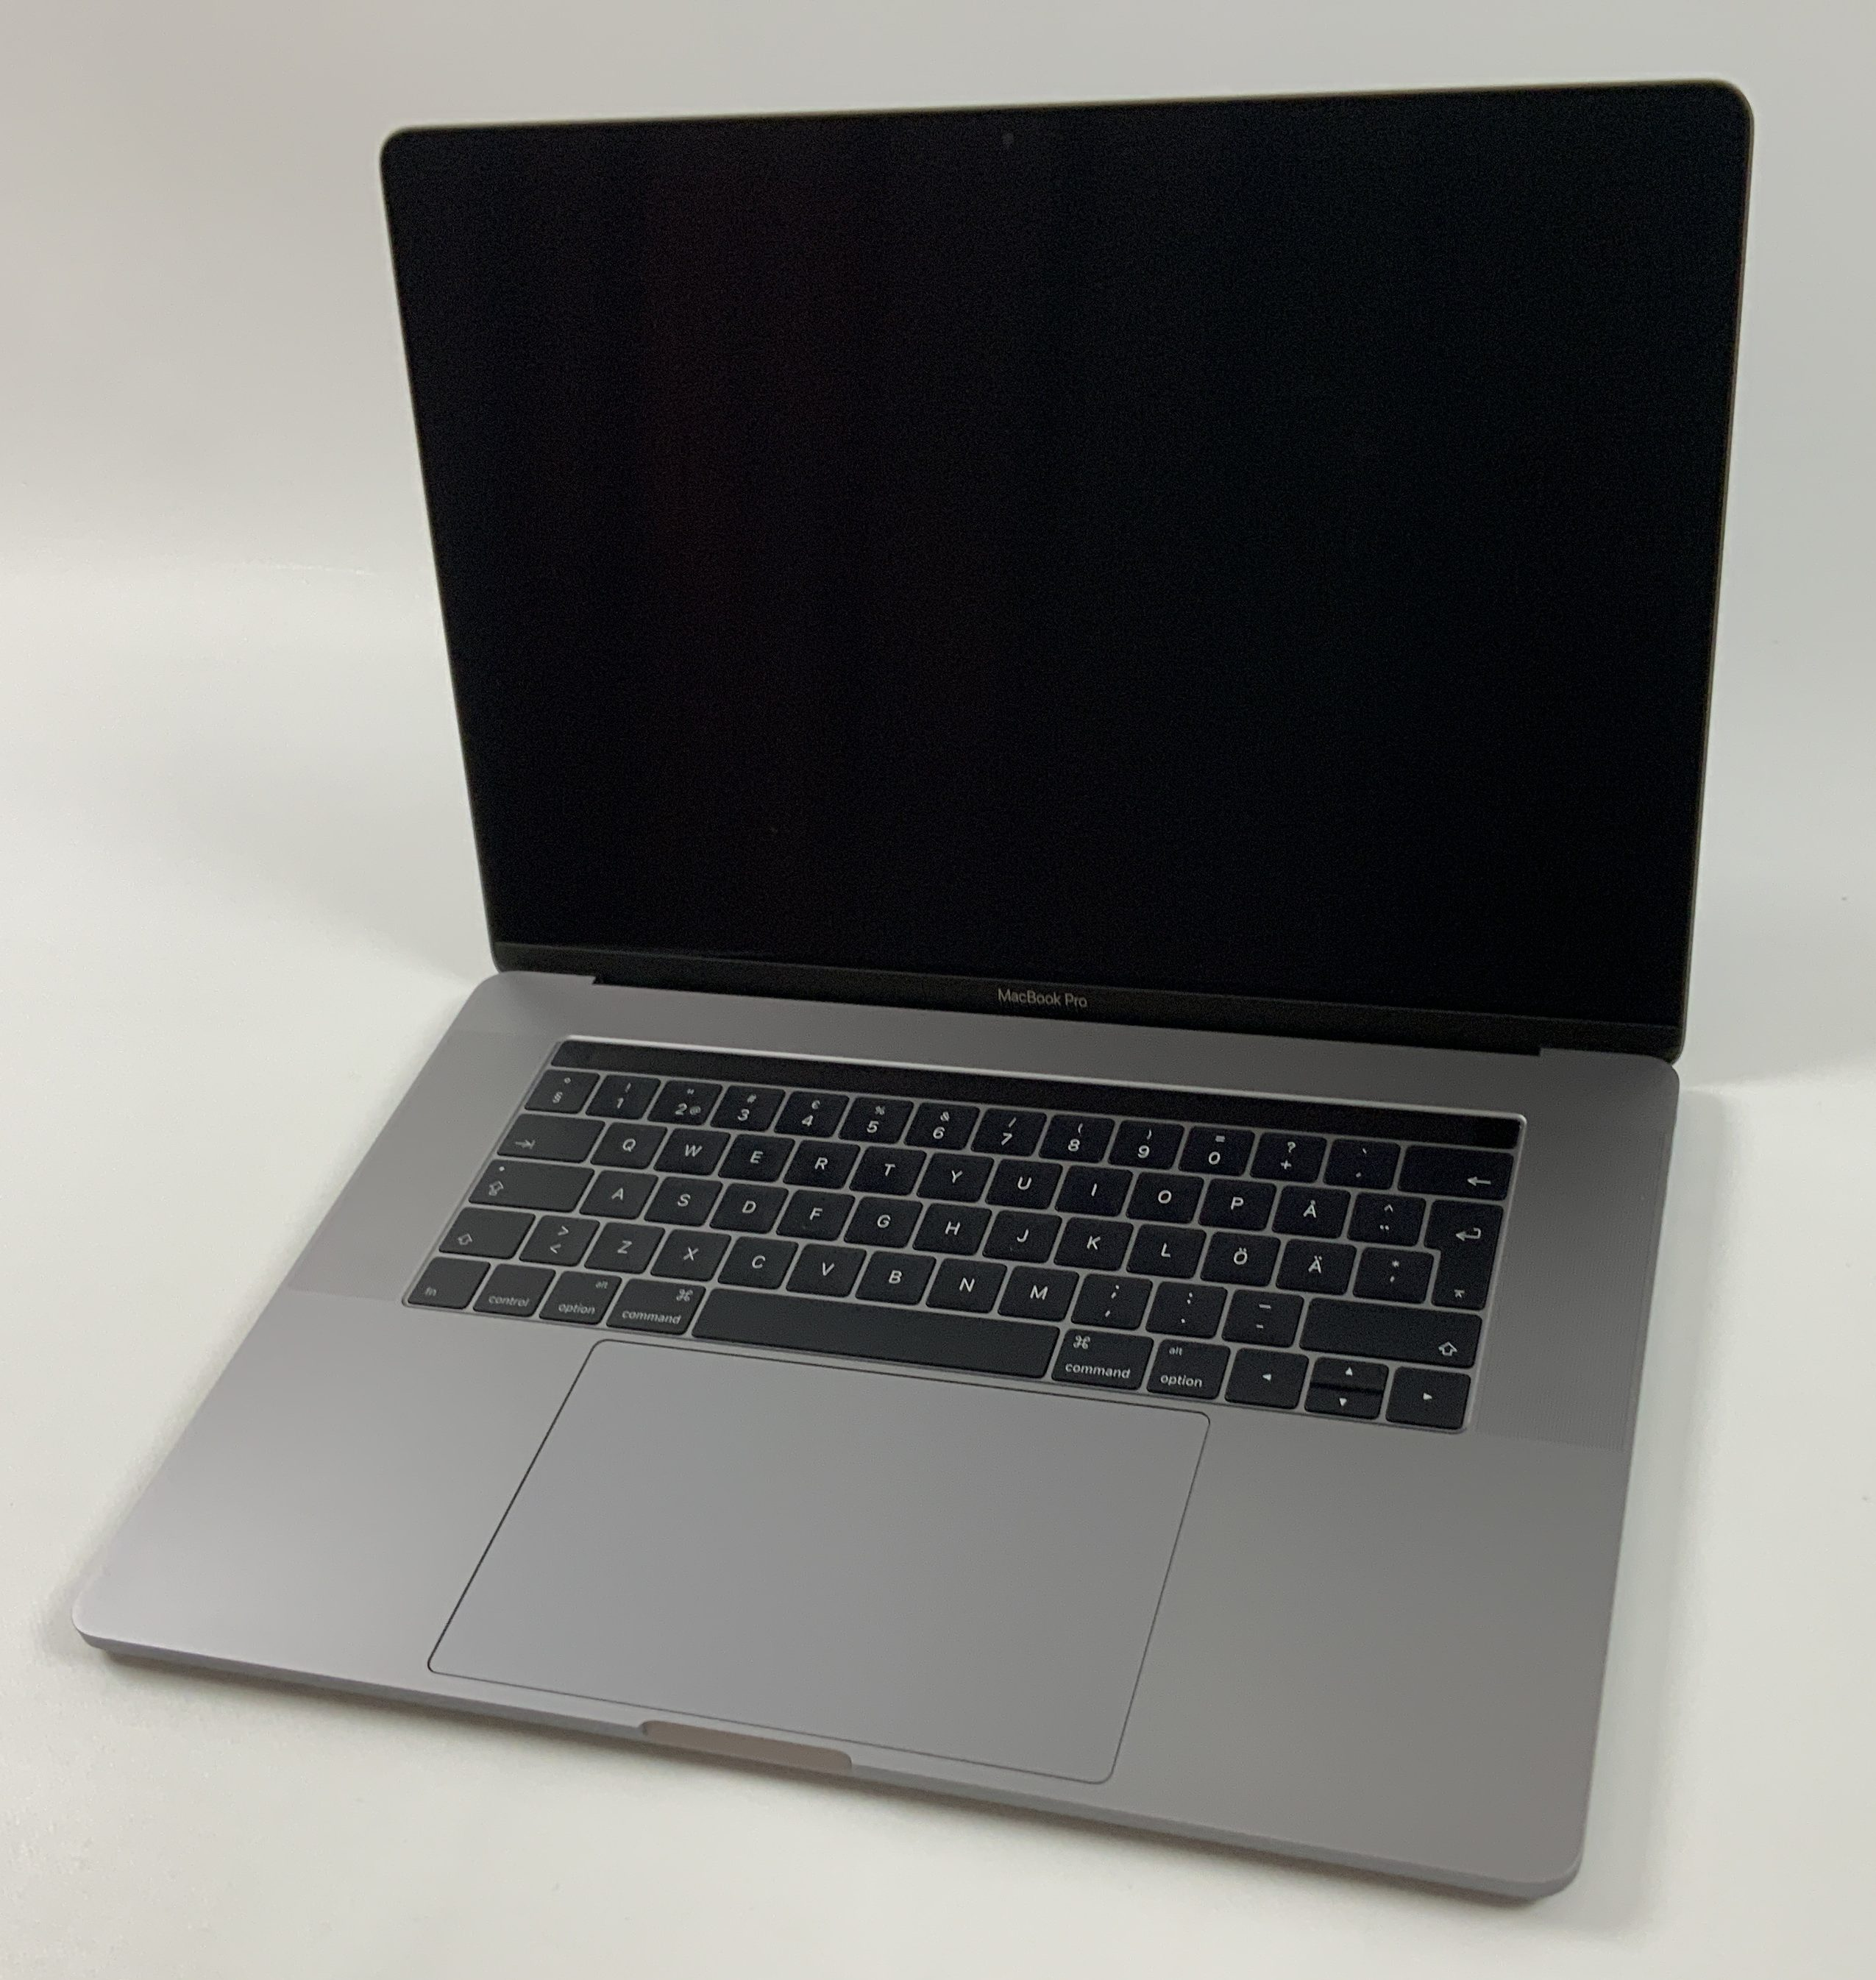 "MacBook Pro 15"" Touch Bar Late 2016 (Intel Quad-Core i7 2.7 GHz 16 GB RAM 512 GB SSD), Space Gray, Intel Quad-Core i7 2.7 GHz, 16 GB RAM, 512 GB SSD, Kuva 1"